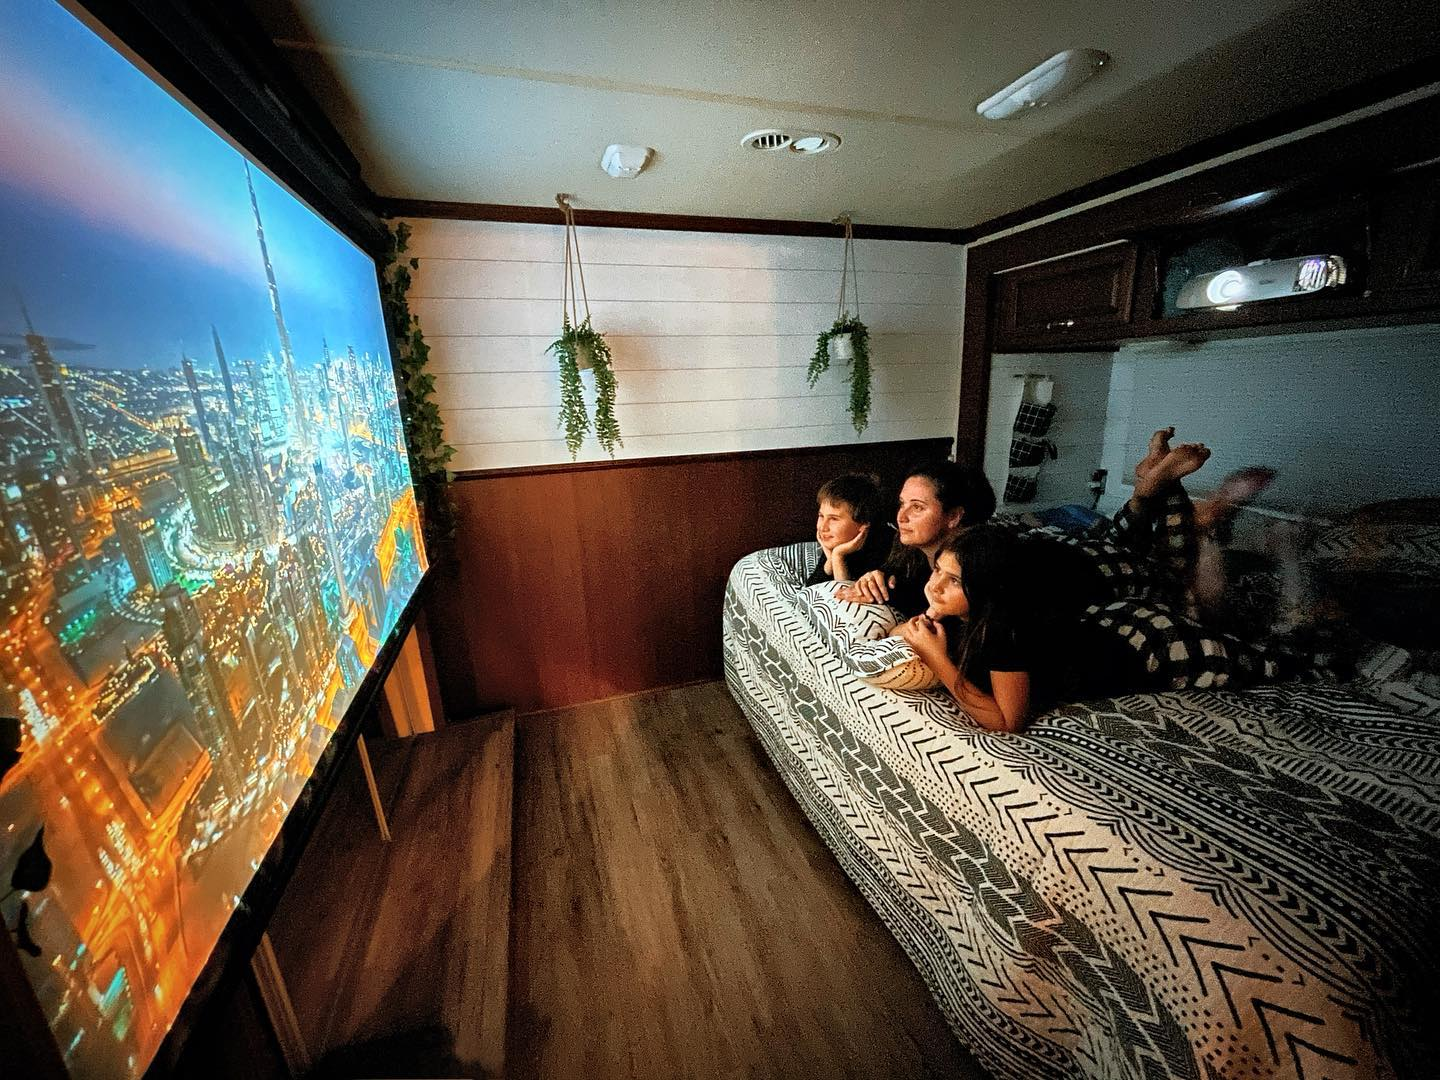 family using a projector to watch media in their RV